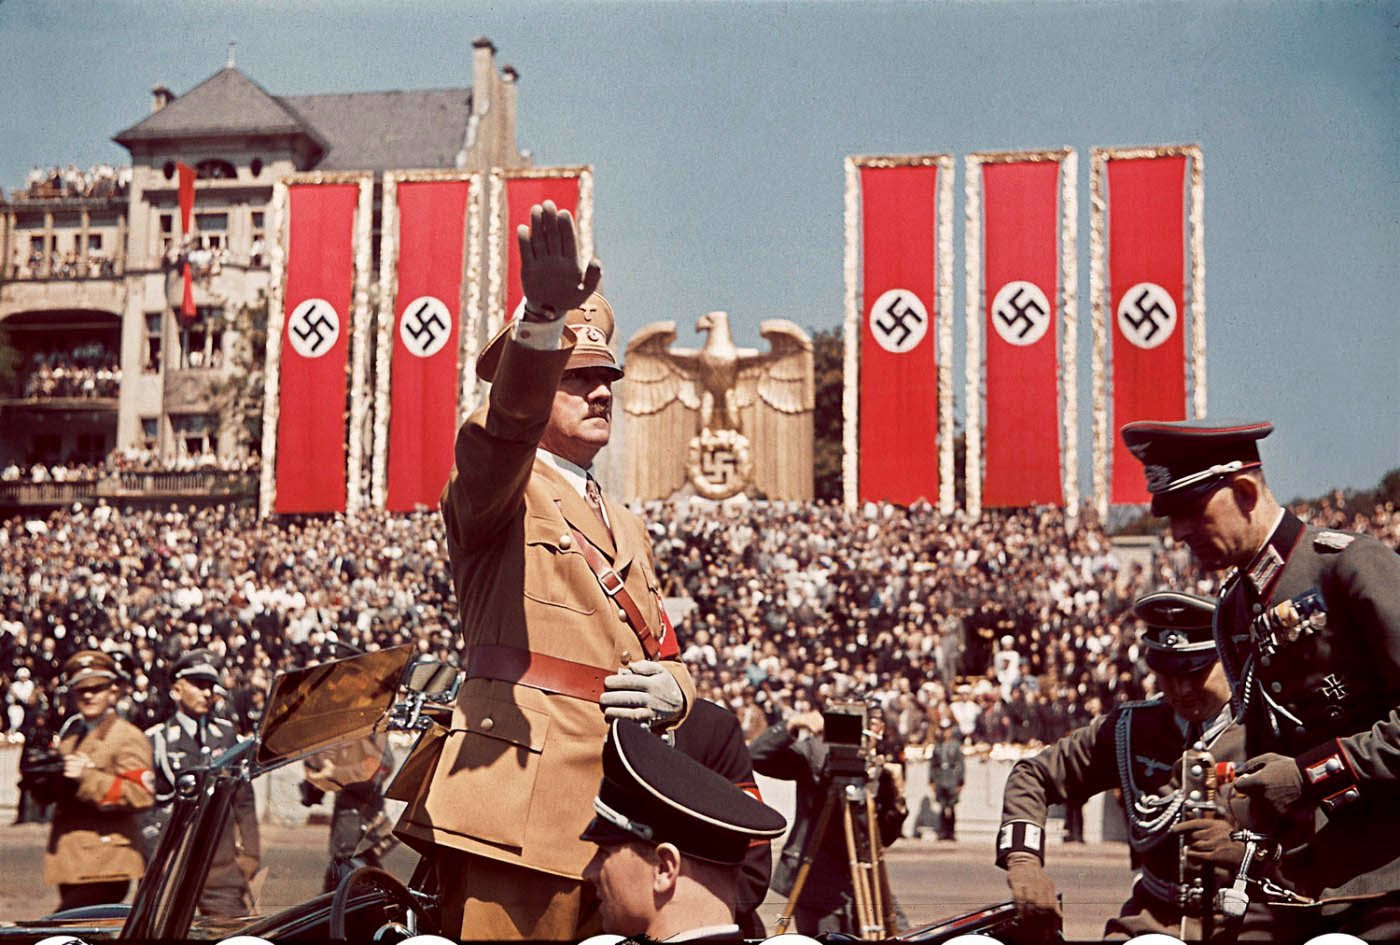 a personal opinion on adolf hitler a political leader of the german nazi regime